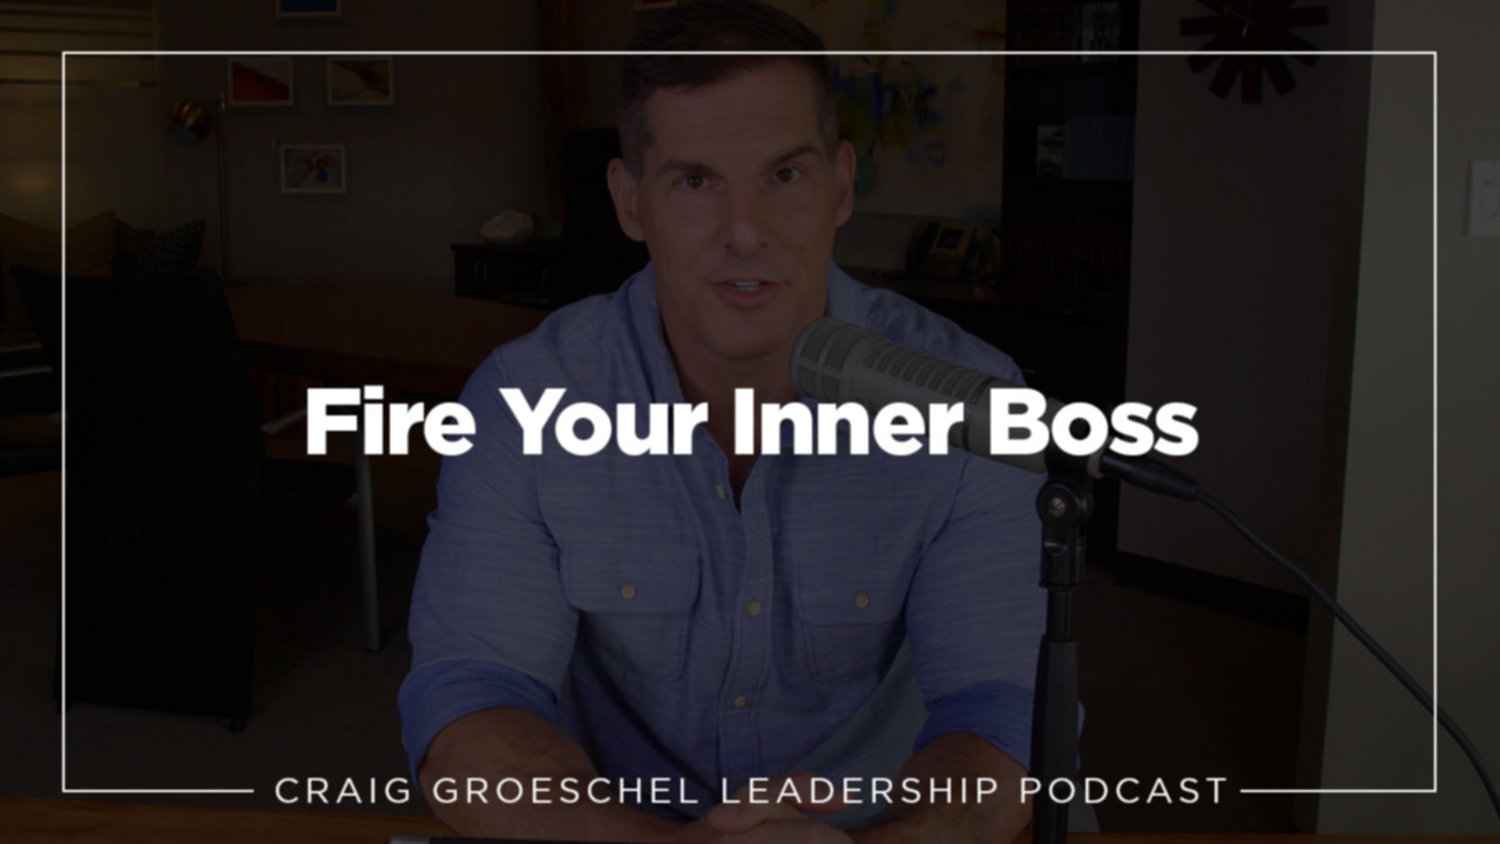 Fire Your Inner Boss